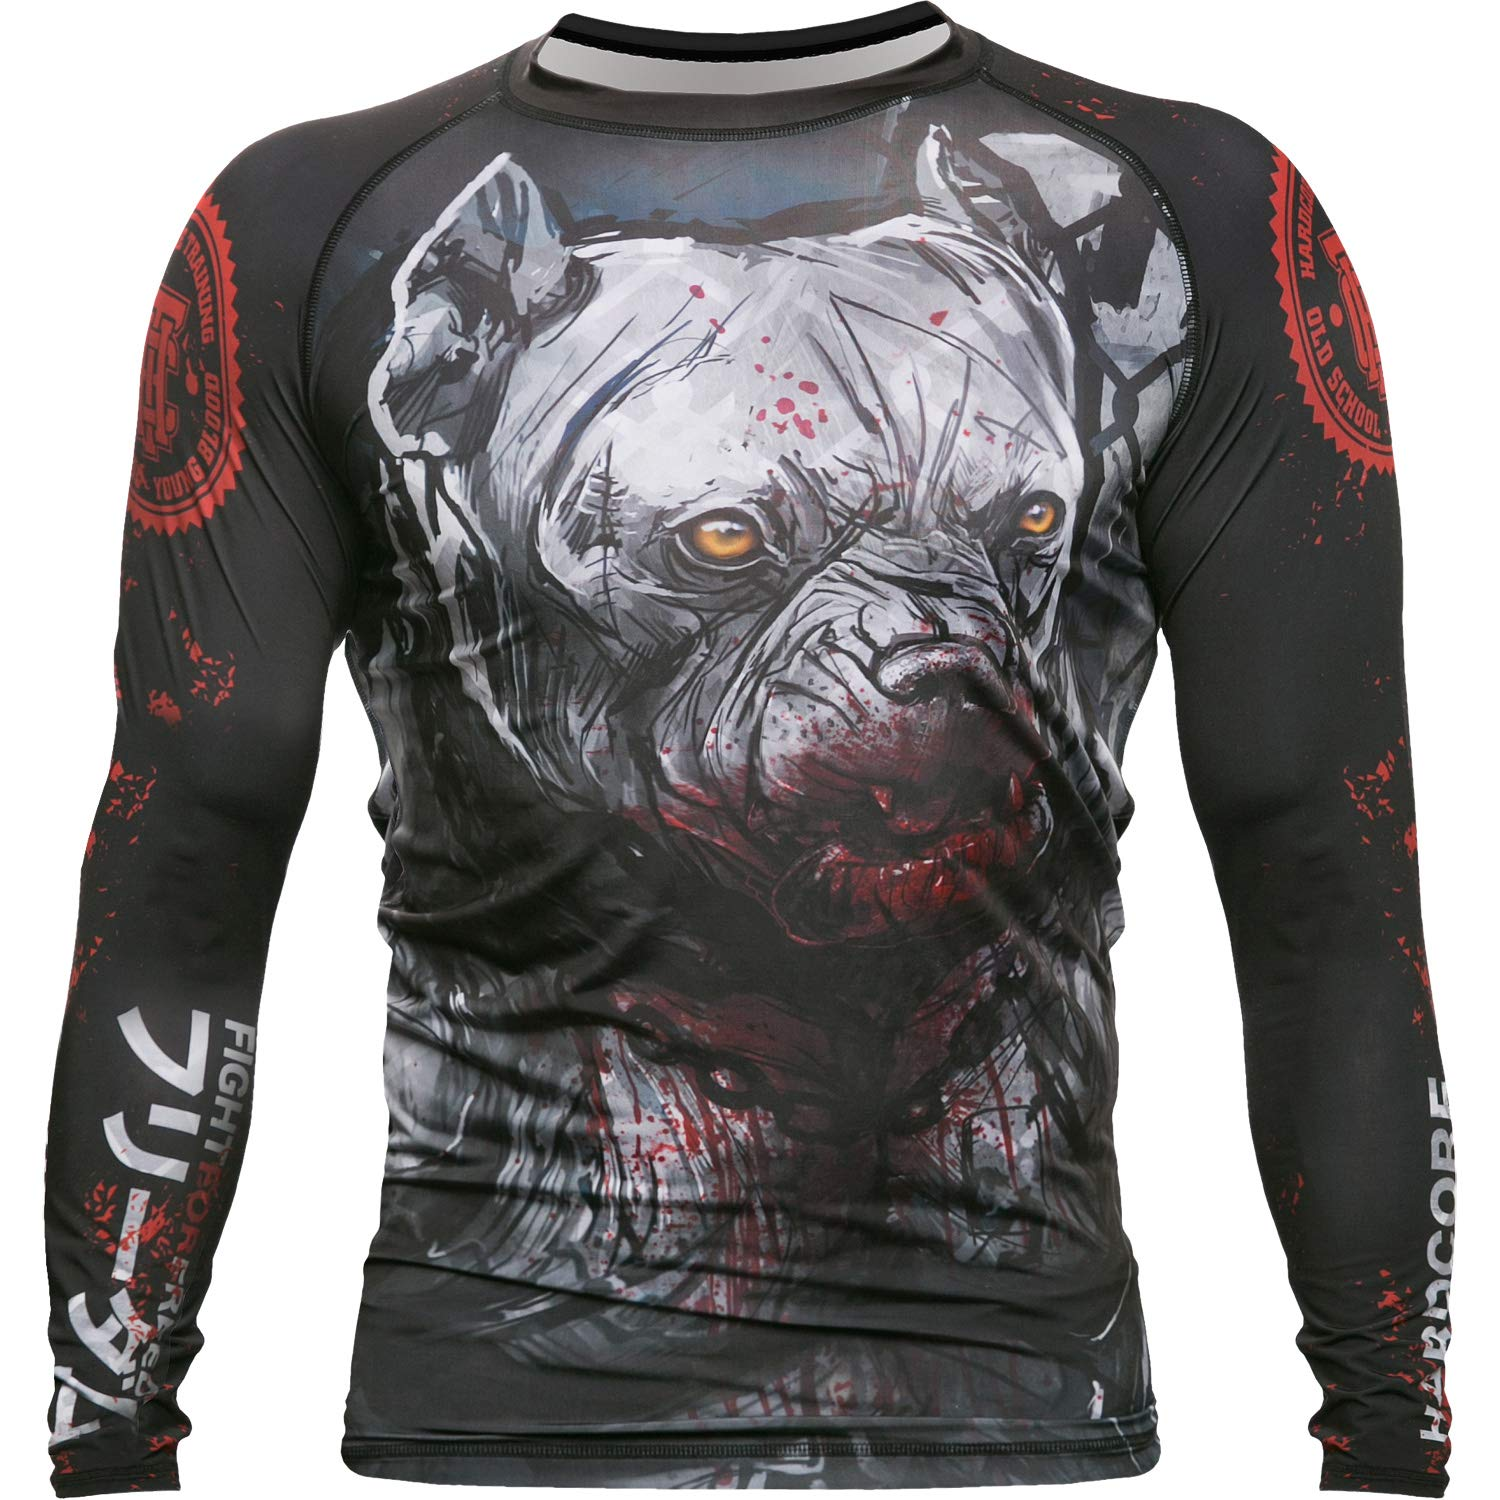 Rash guard Compression mma boxing grappling training gym workout long sleeve